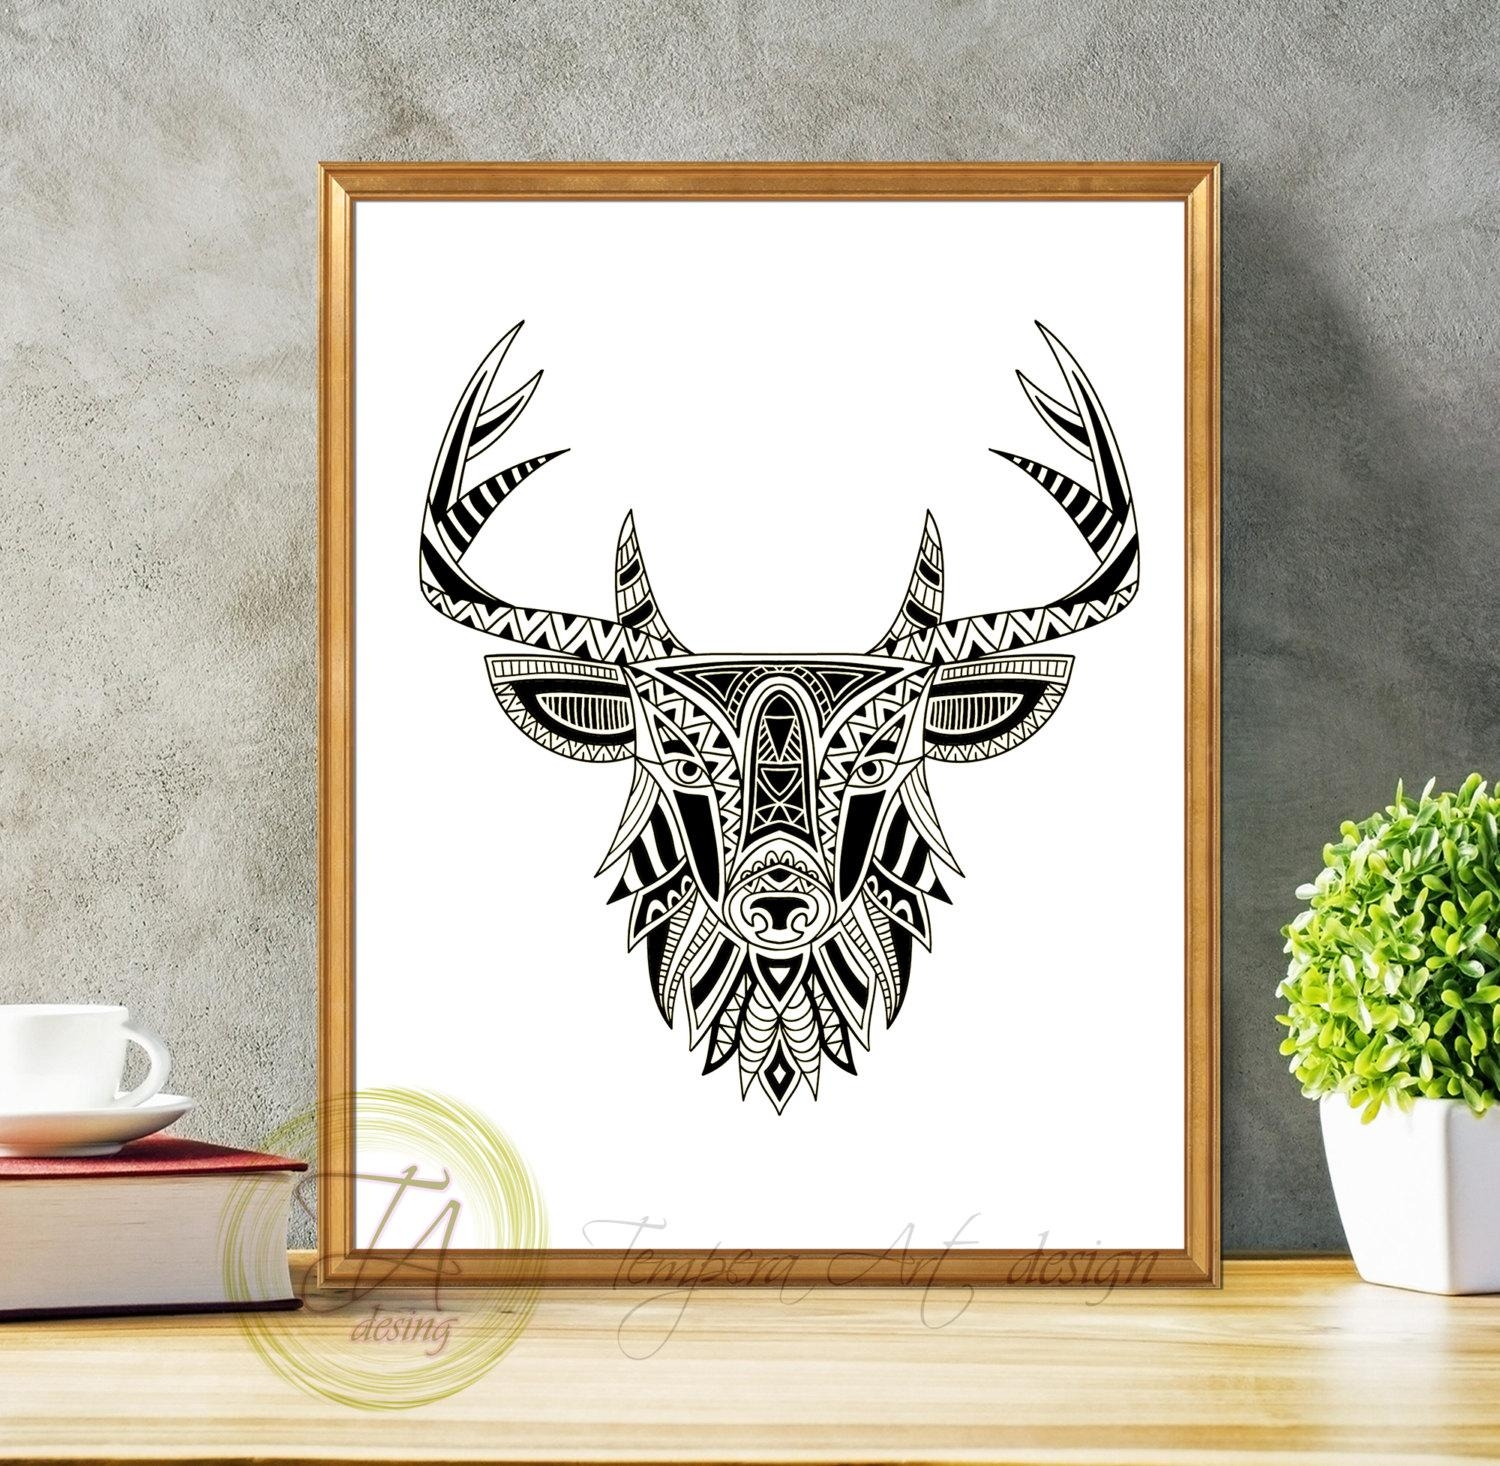 Black And White Prints Black And White Art Deer Black And With Regard To Black And White Wall Art (Image 10 of 20)